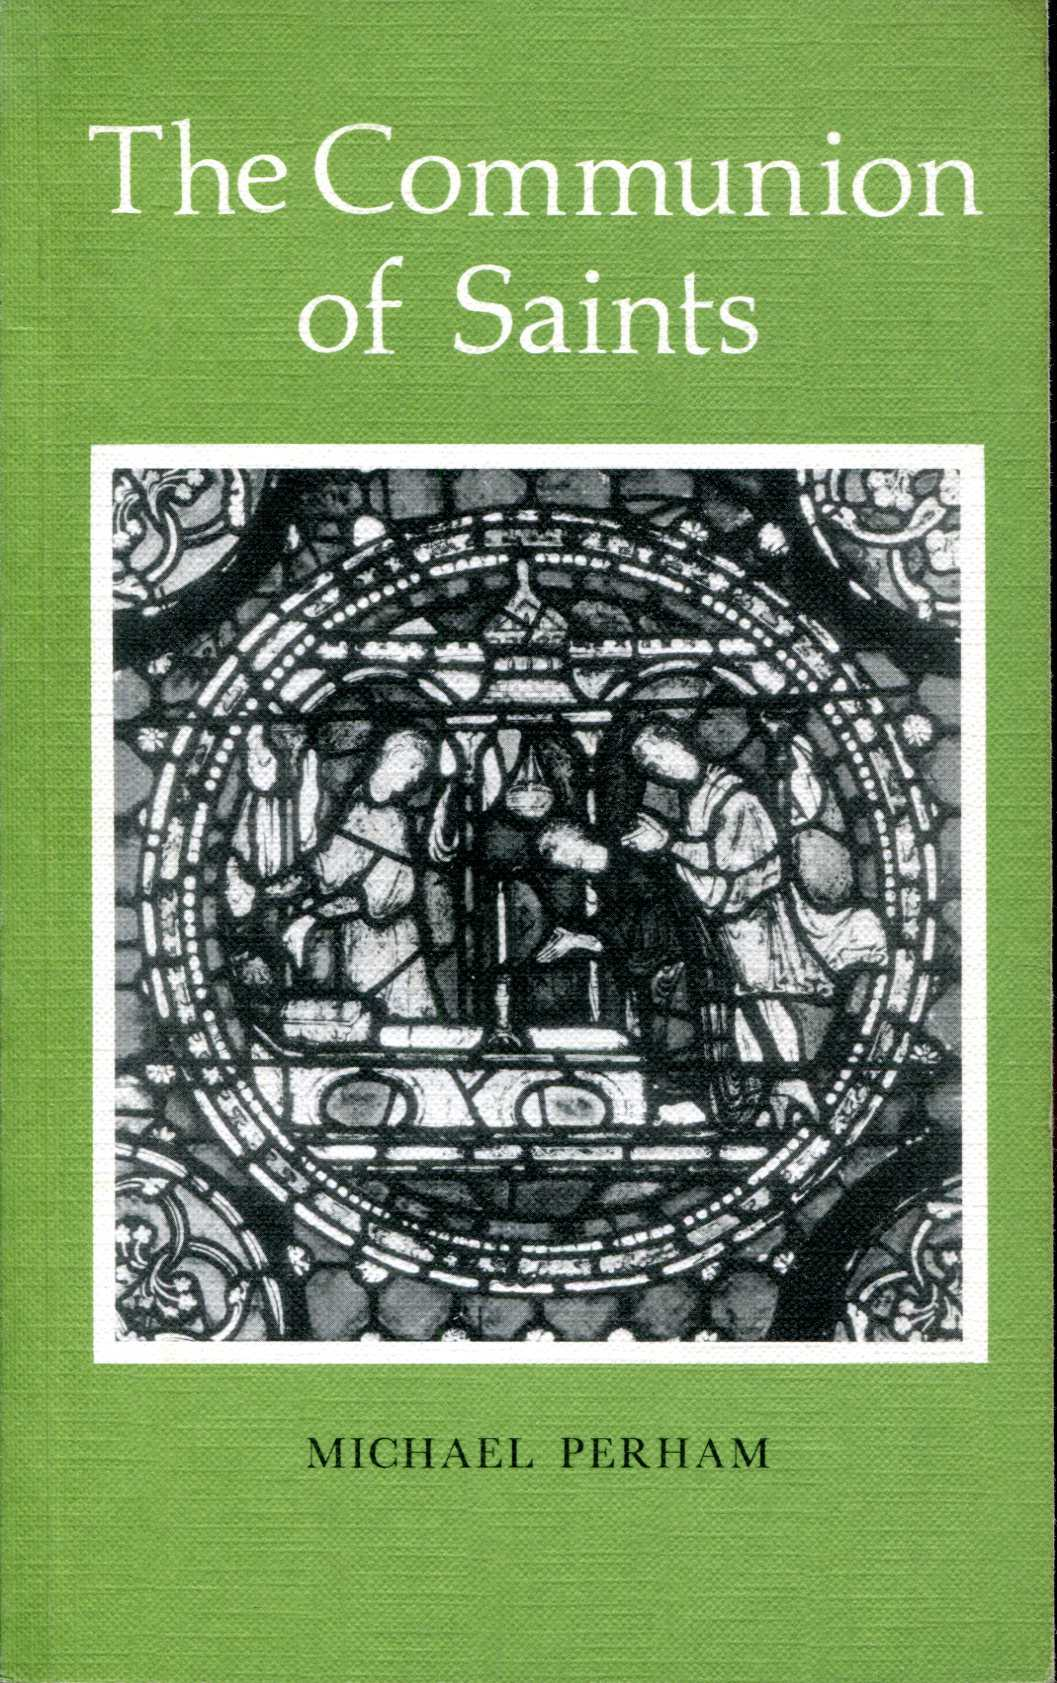 Image for Alcuin Club Collections No. 62 : The Communion of Saints: An examination of the place of the Christian dead in the belief, worship, and calendars of the Churchs